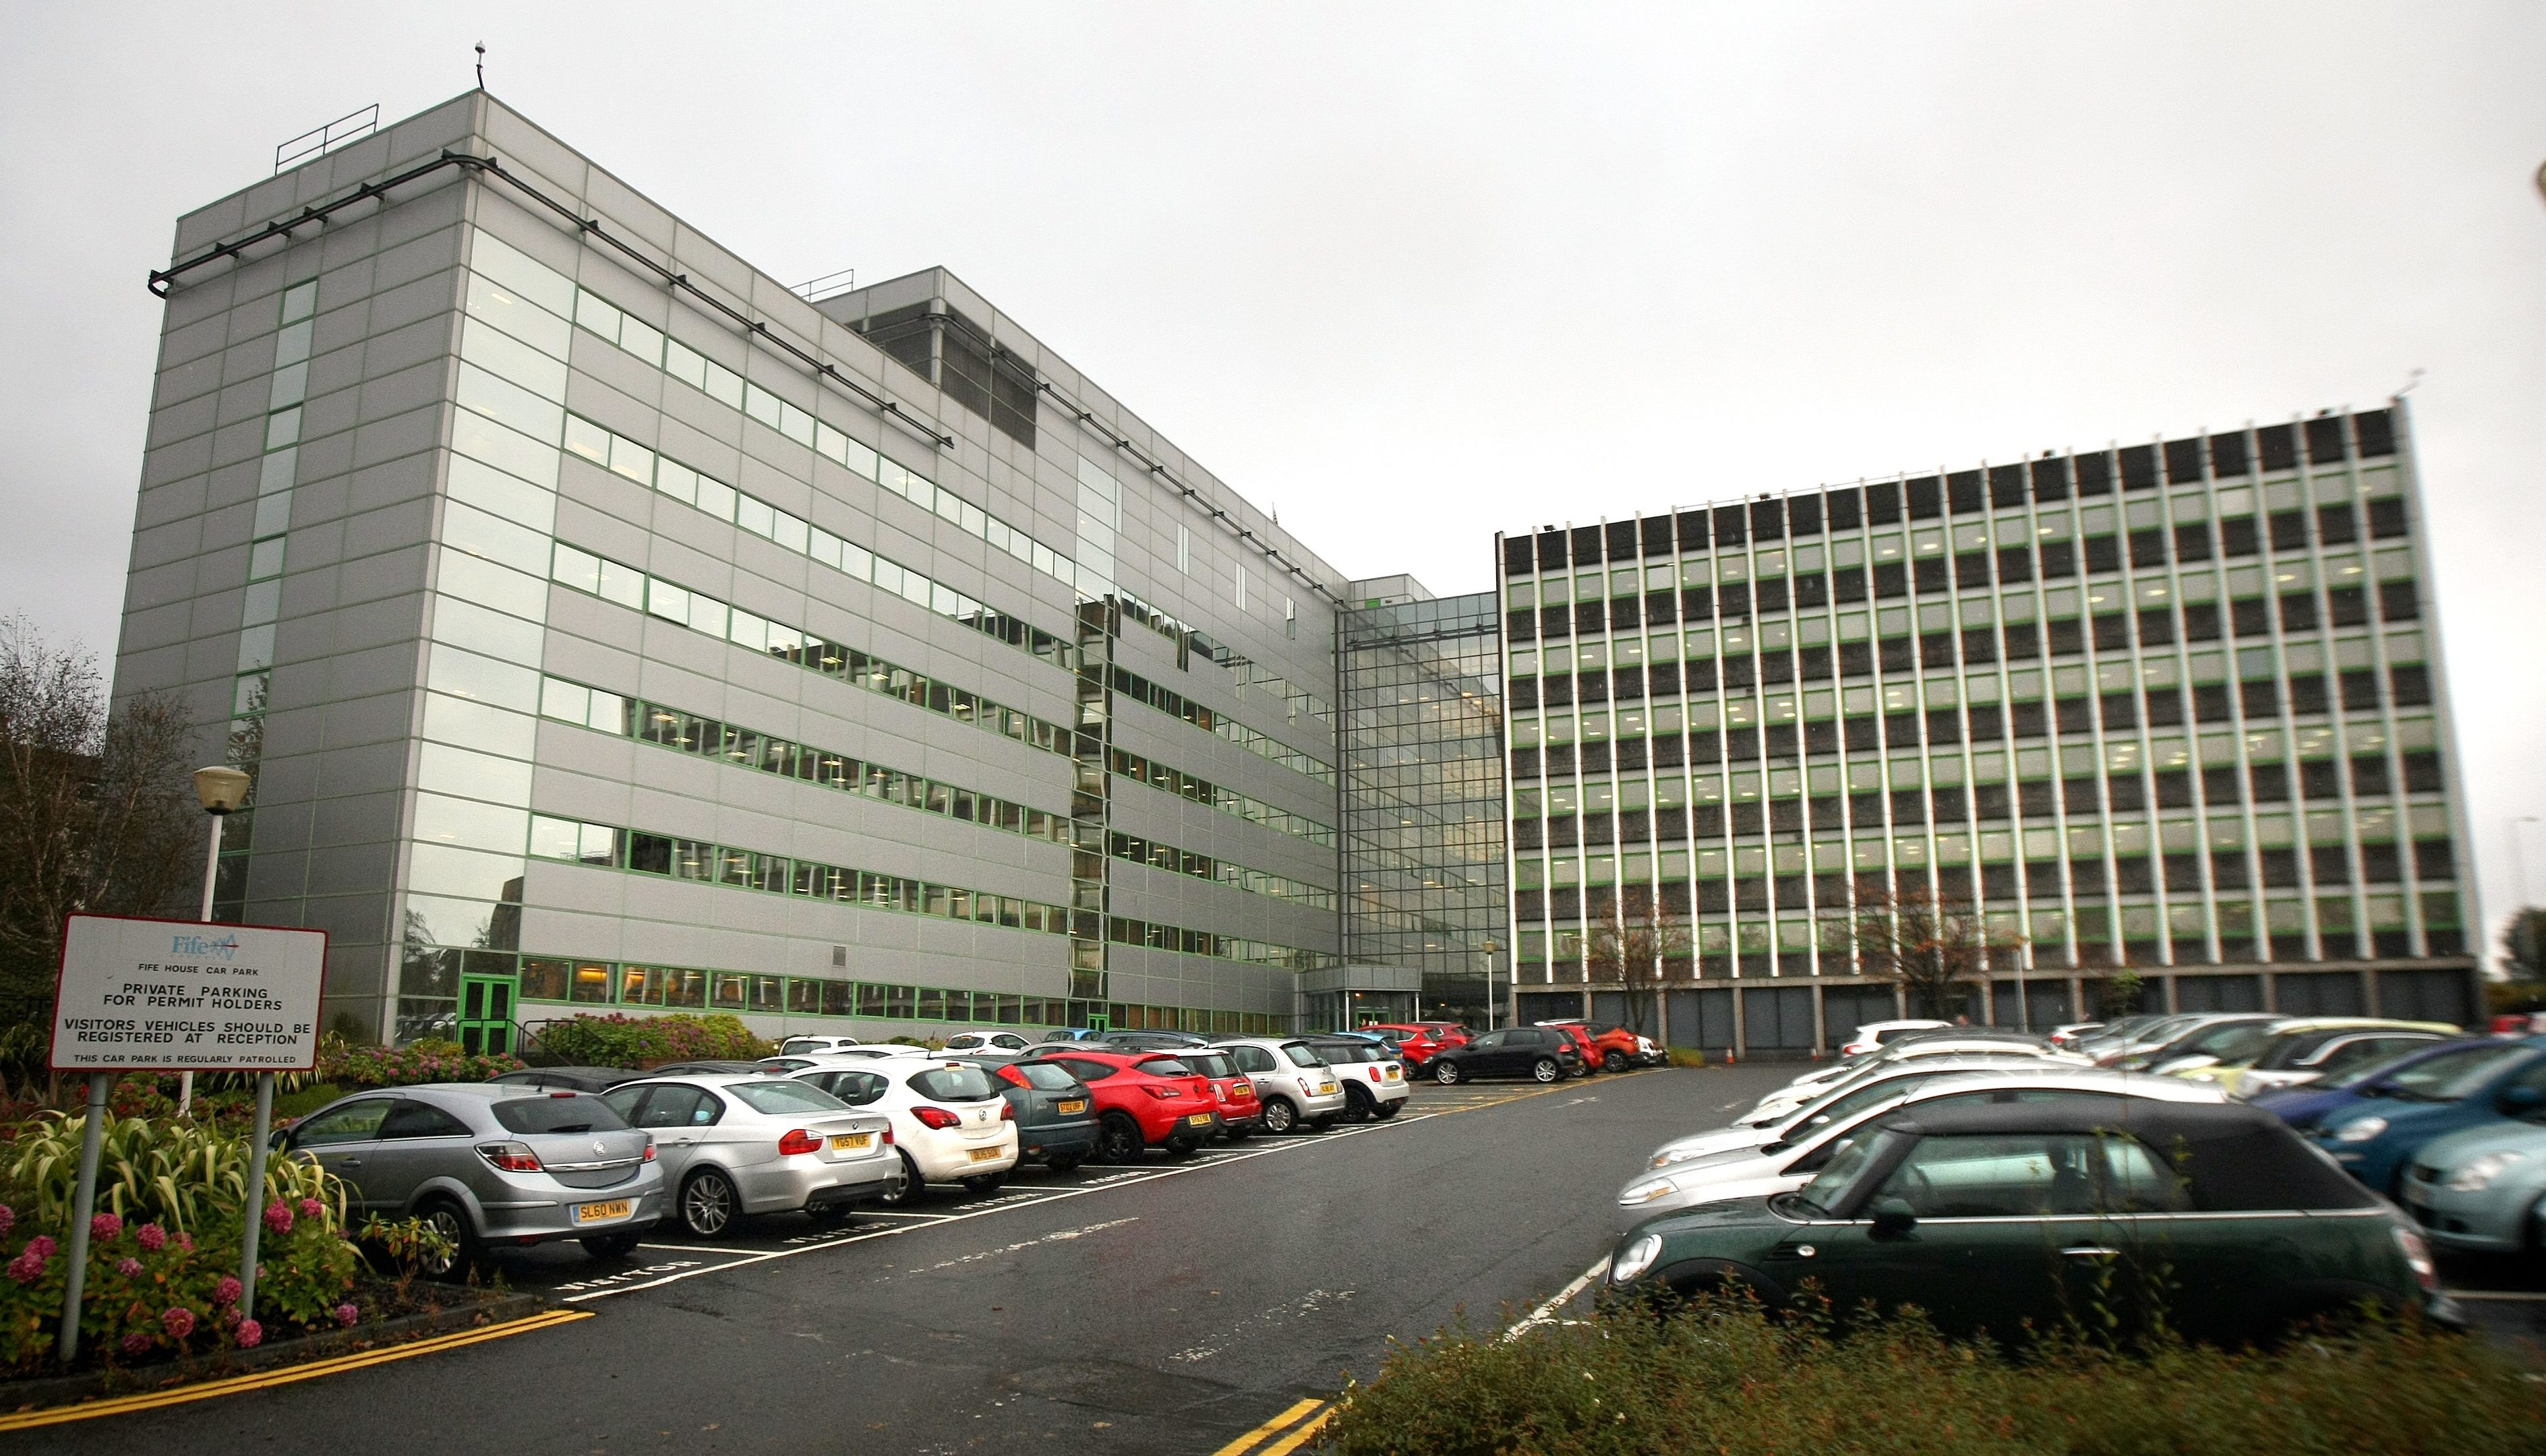 Fife Council headquarters in Glenrothes.